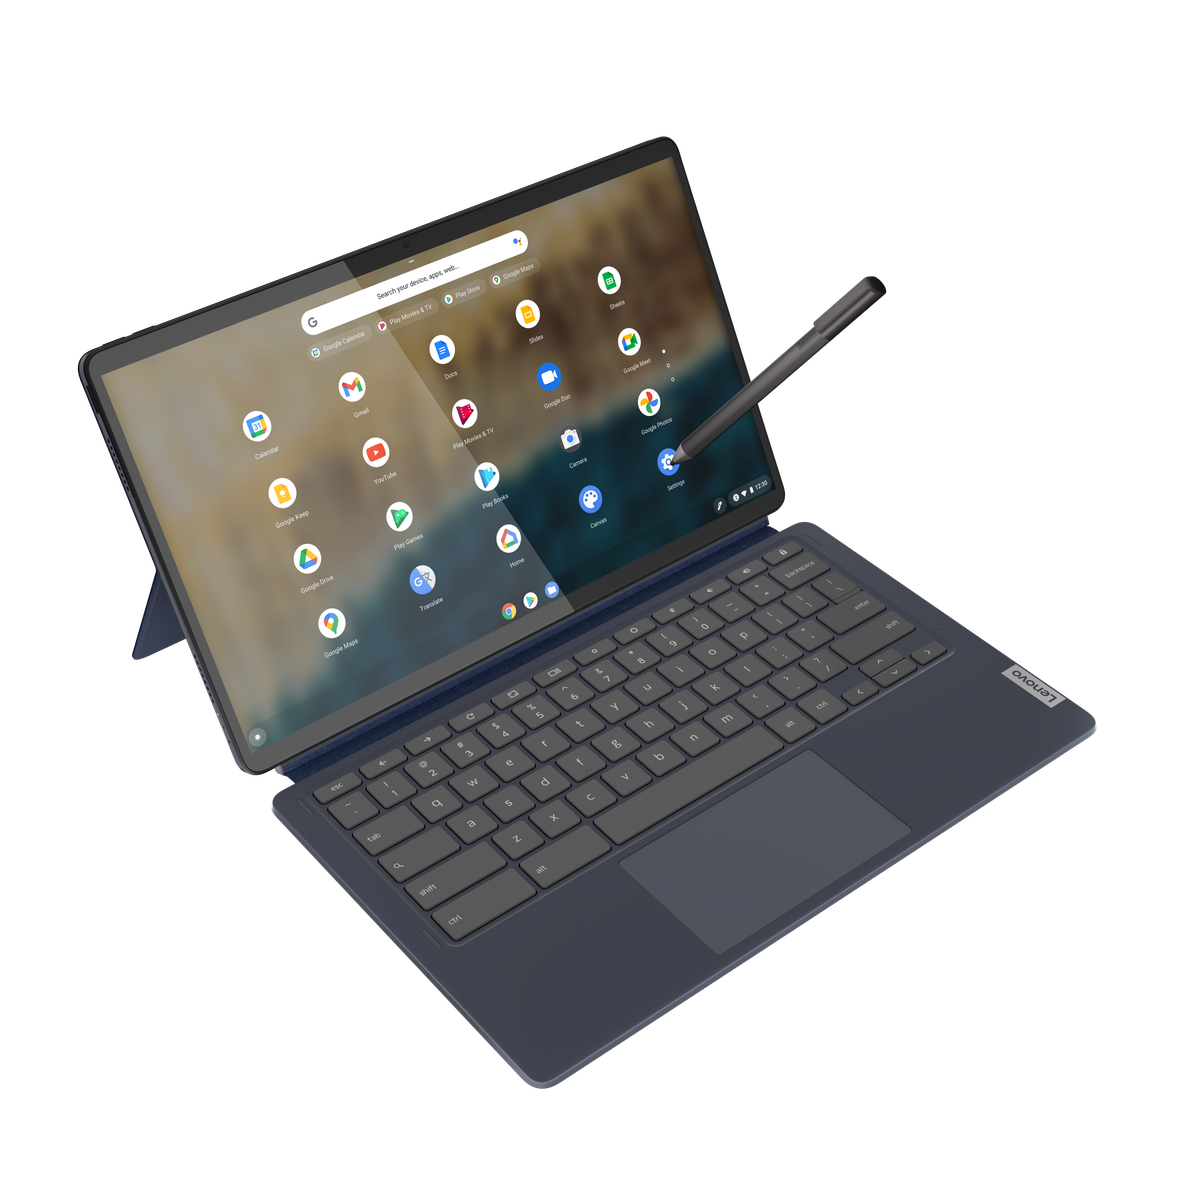 The Lenovo Chromebook Duet in laptop mode, seen from above on a white background with the stylus perpendicular to the right side of the panel. The screen displays the Chrome OS launcher.